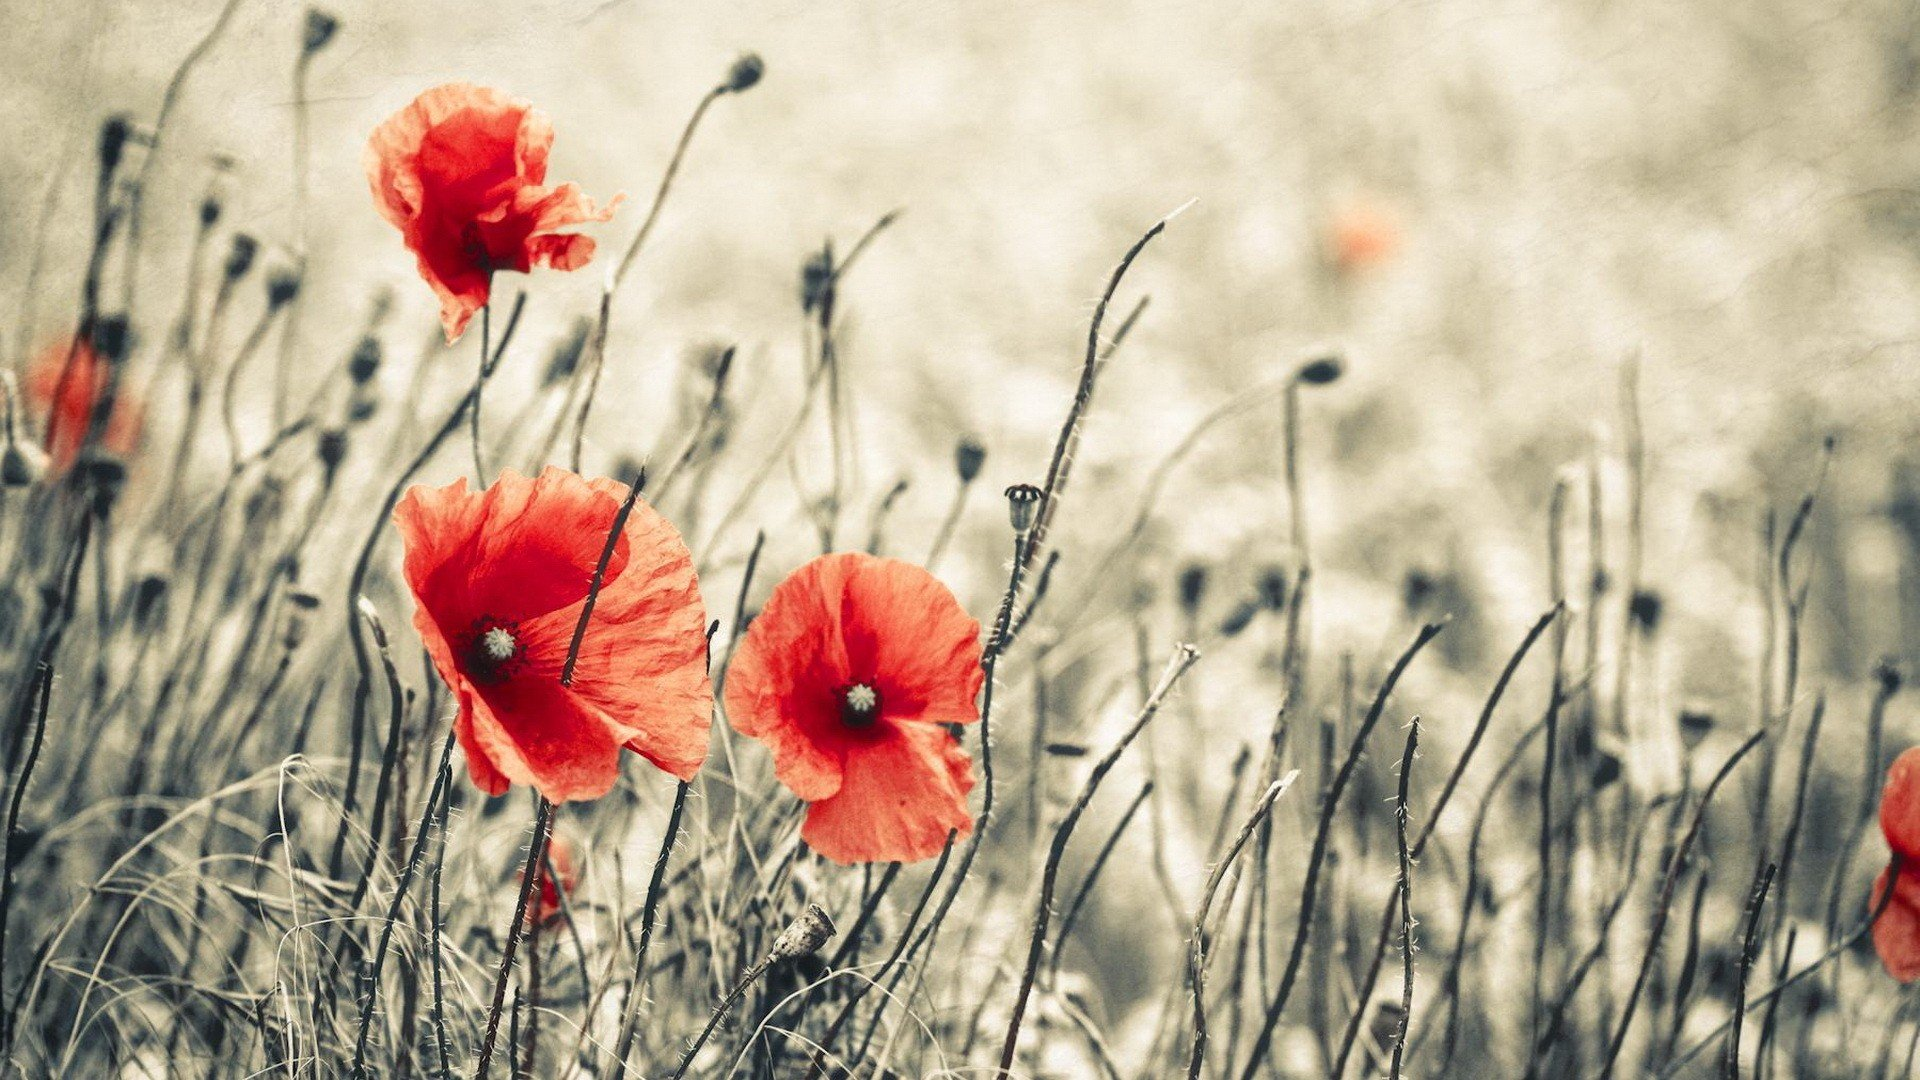 download wallpaper poppies red - photo #20